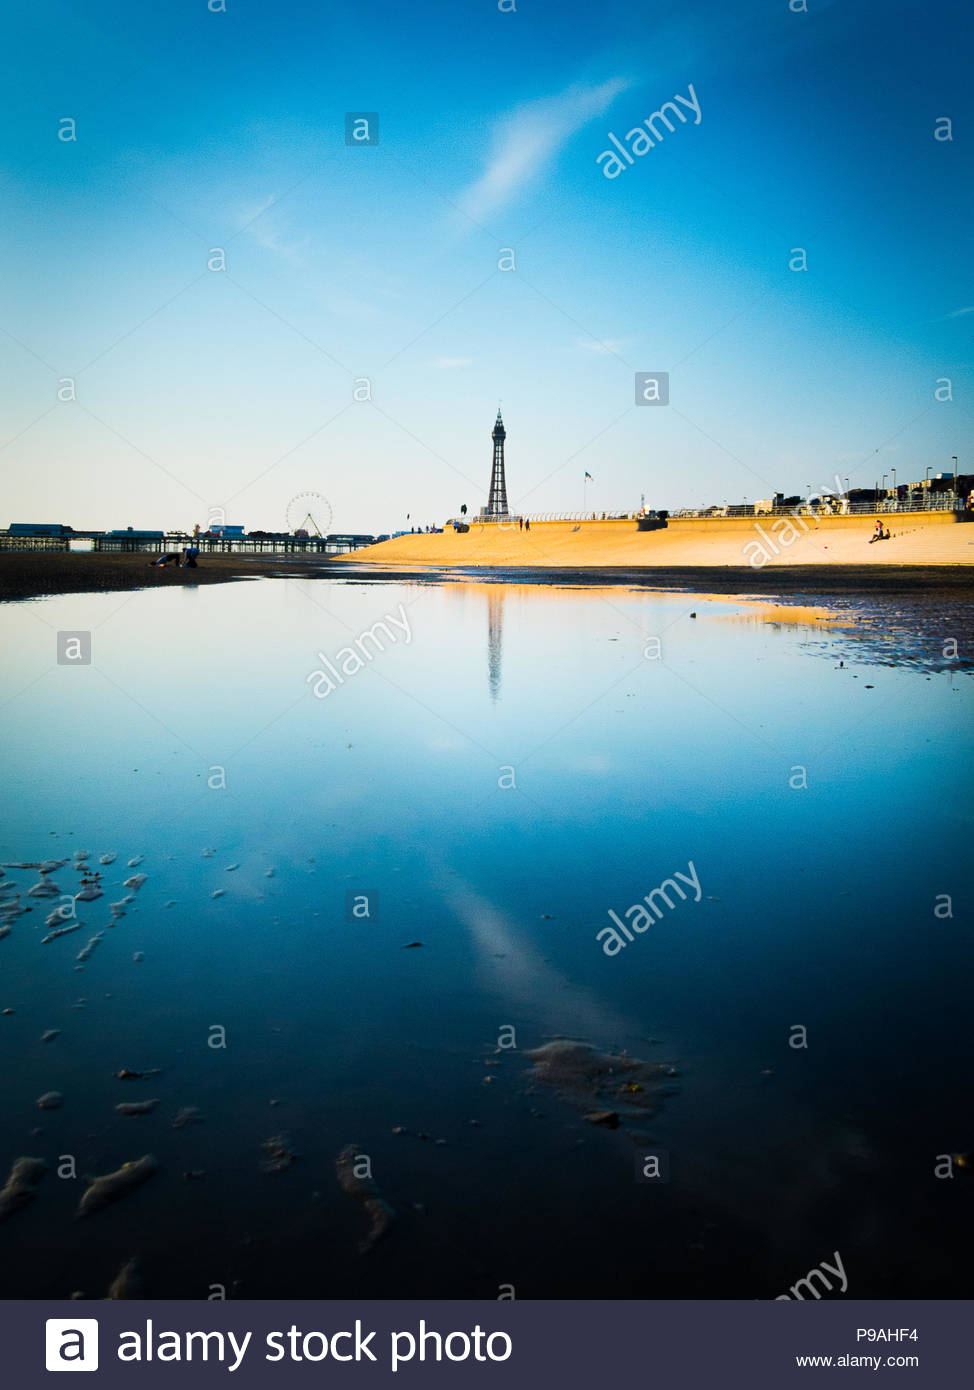 La Blackpool Tower riflessione Immagini Stock